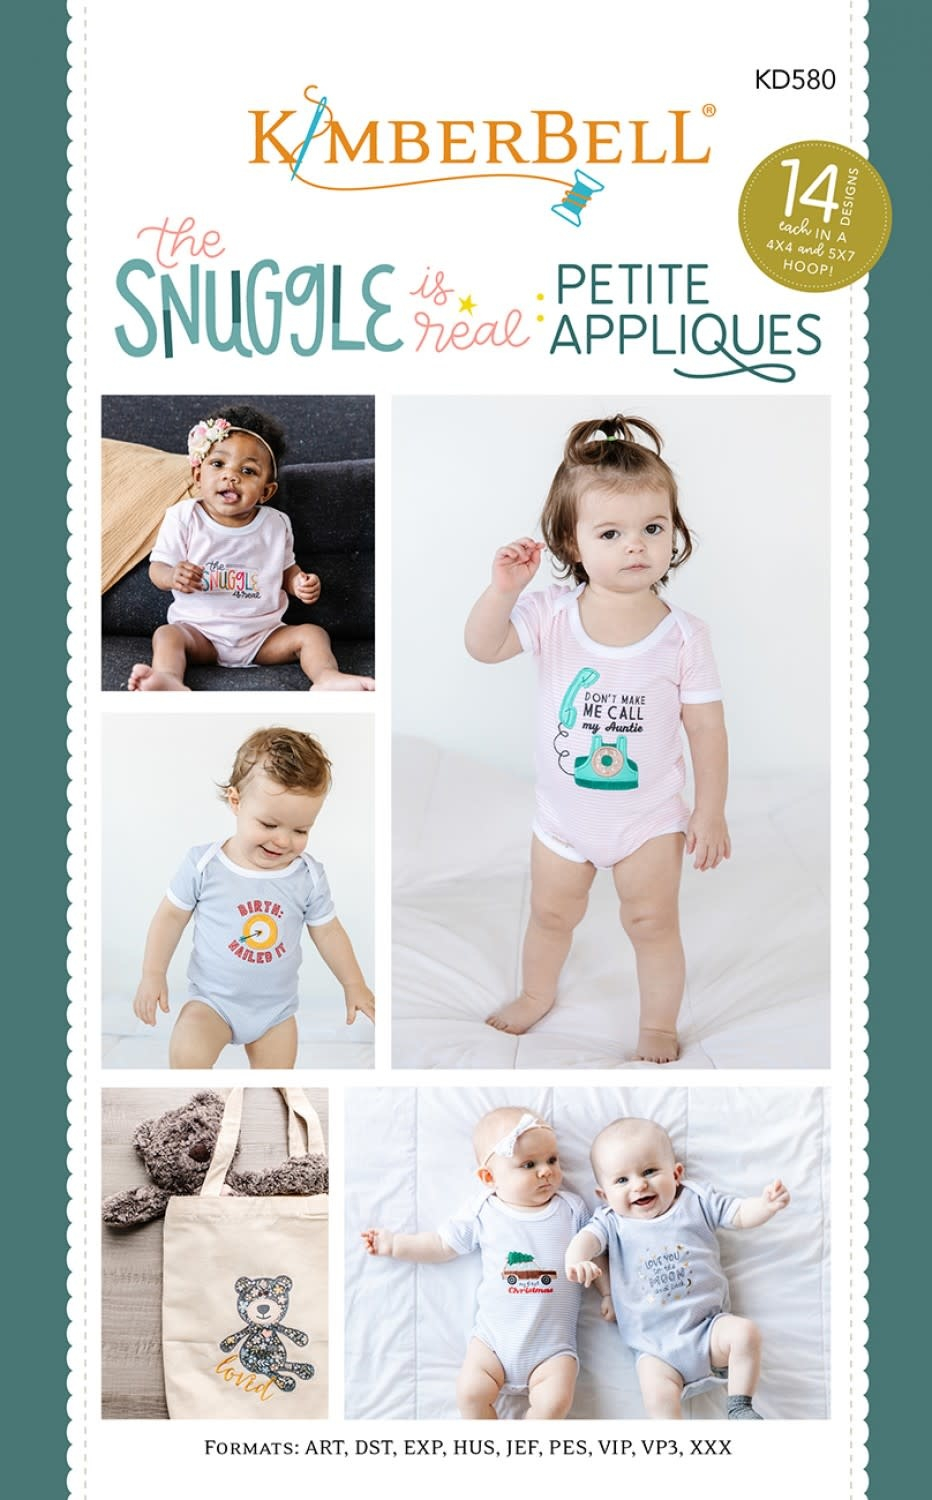 KIMBERBELL DESIGNS The Snuggle is Real:  Petite Appliques